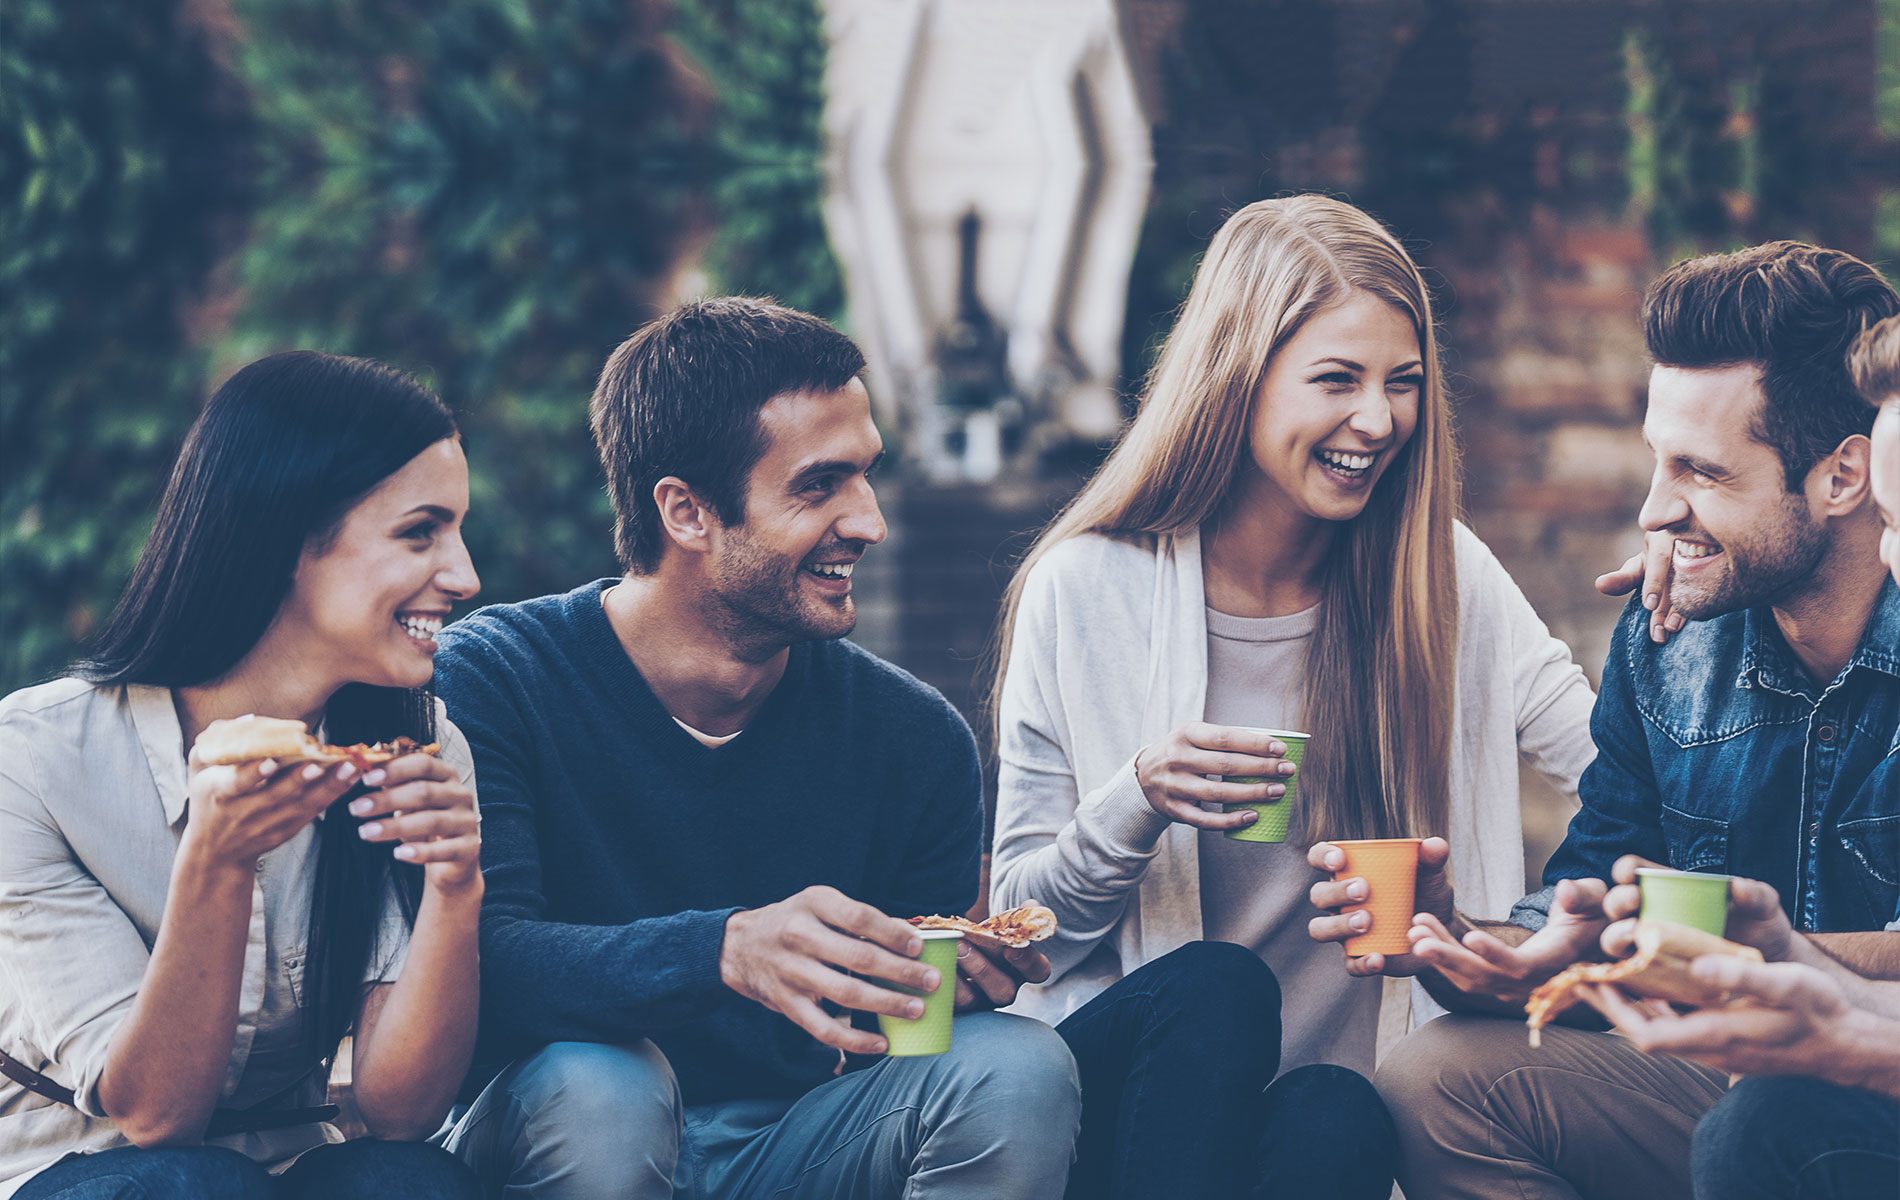 Group of friends enjoying drinks outdoors